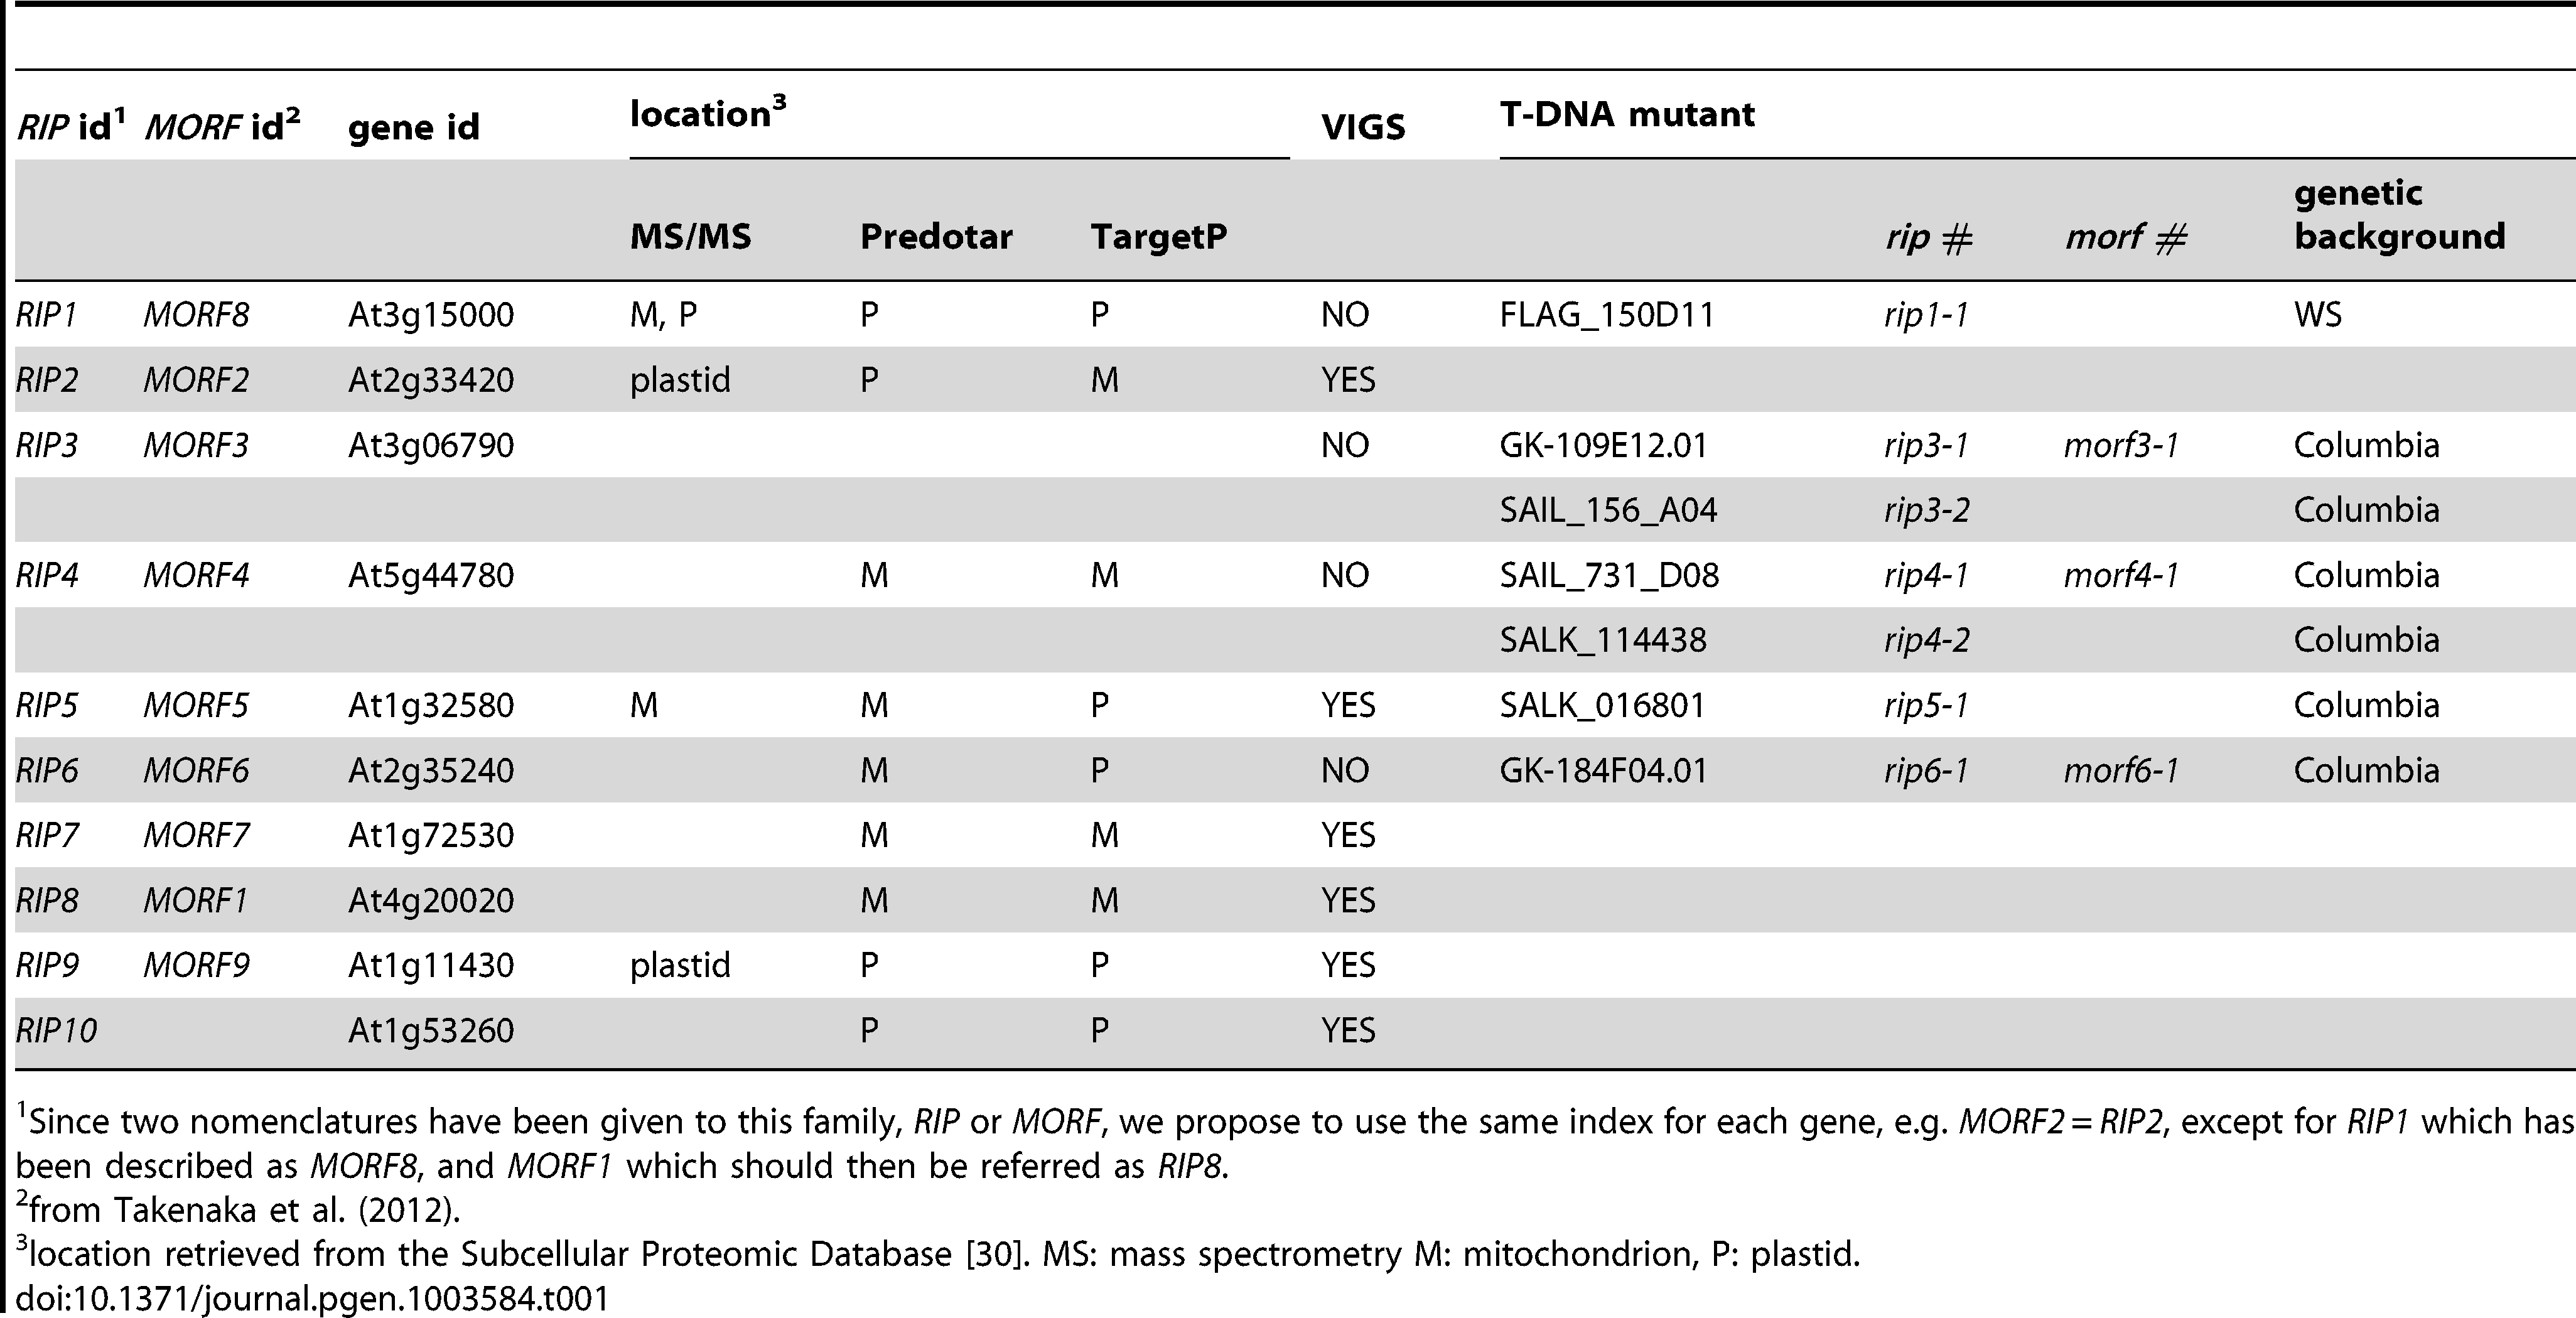 Description of the genes, protein product locations, and mutants used in this study.